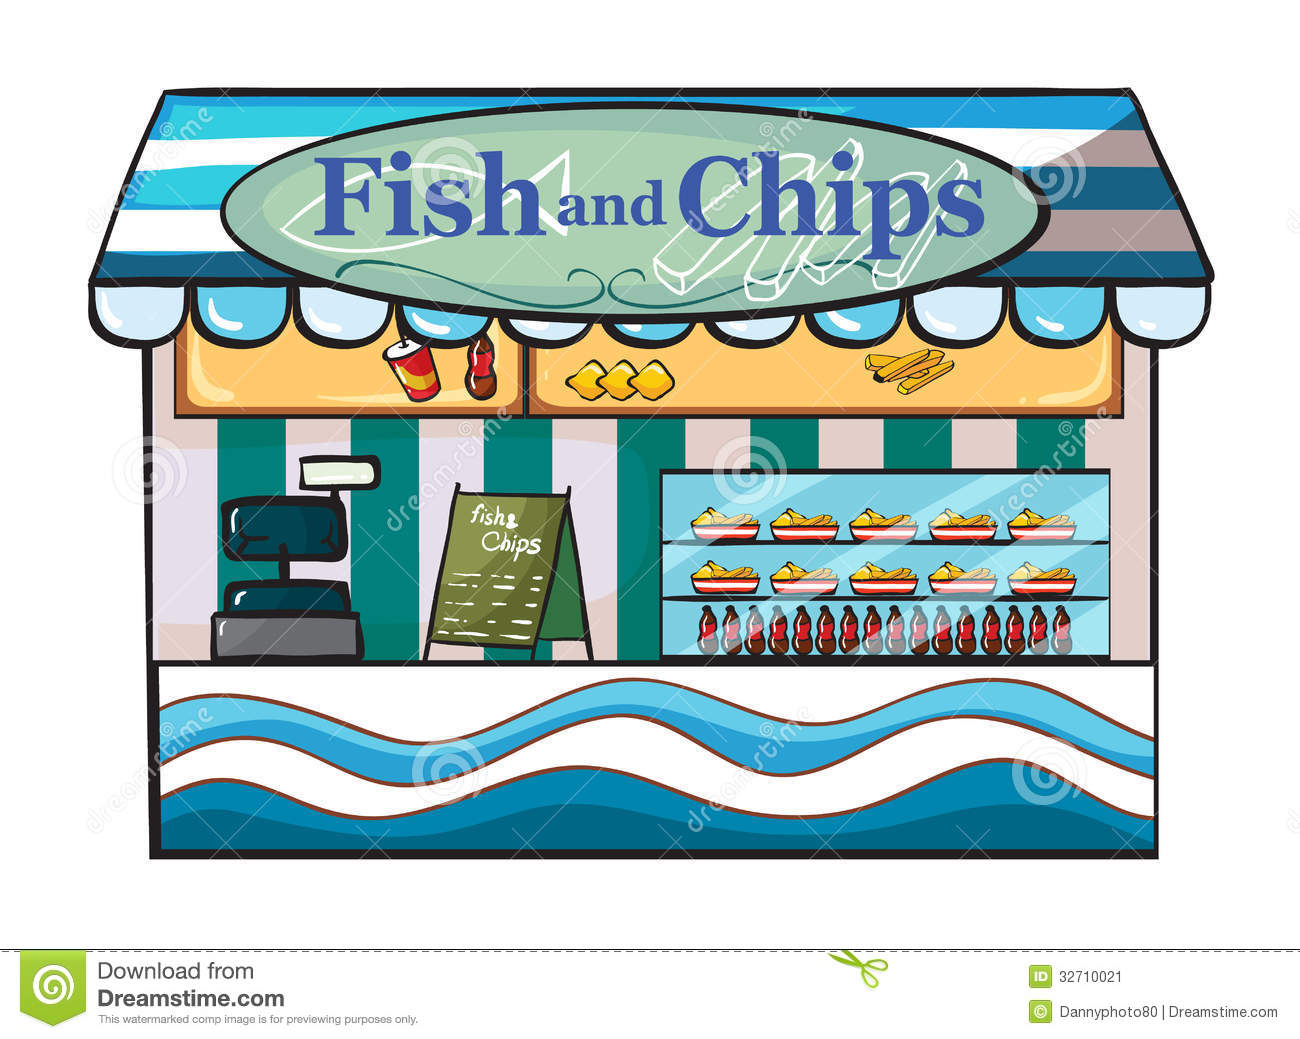 fish and chips clipart - photo #24